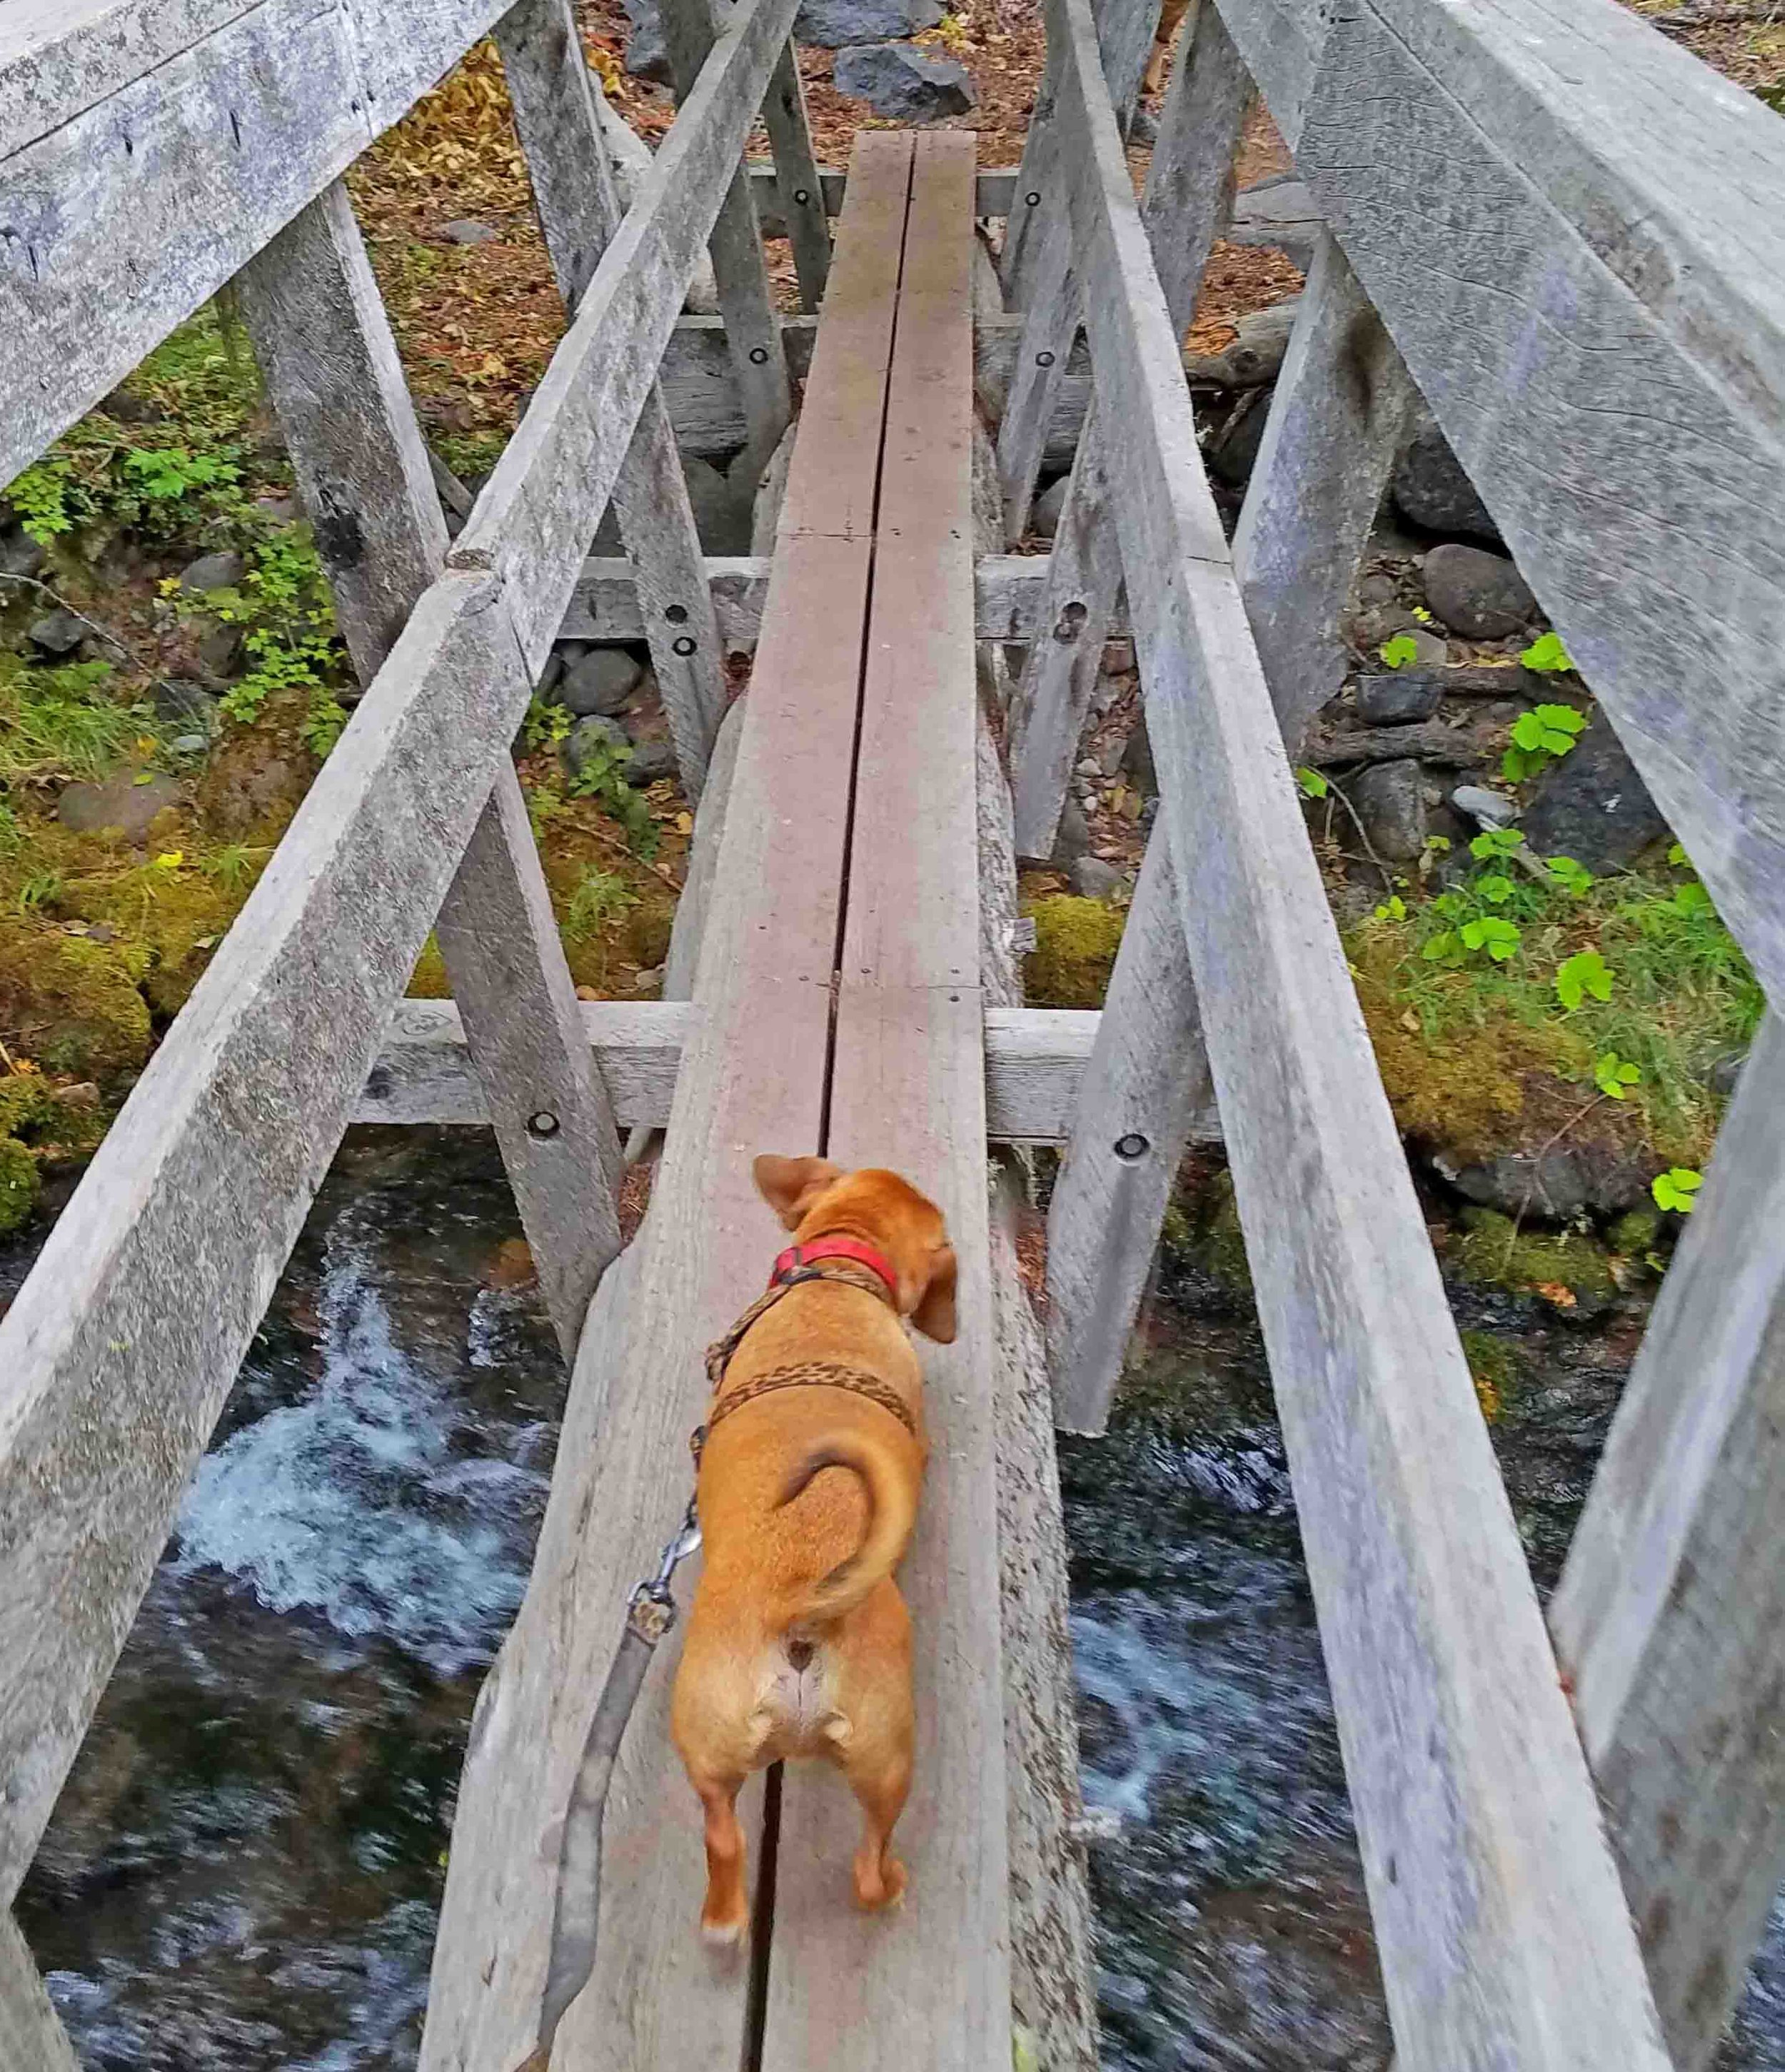 Brave little doxie faces his future. Walk the plank - and trust what's at the other end. Photo: (c) Barb Ayers, DogDiary.org